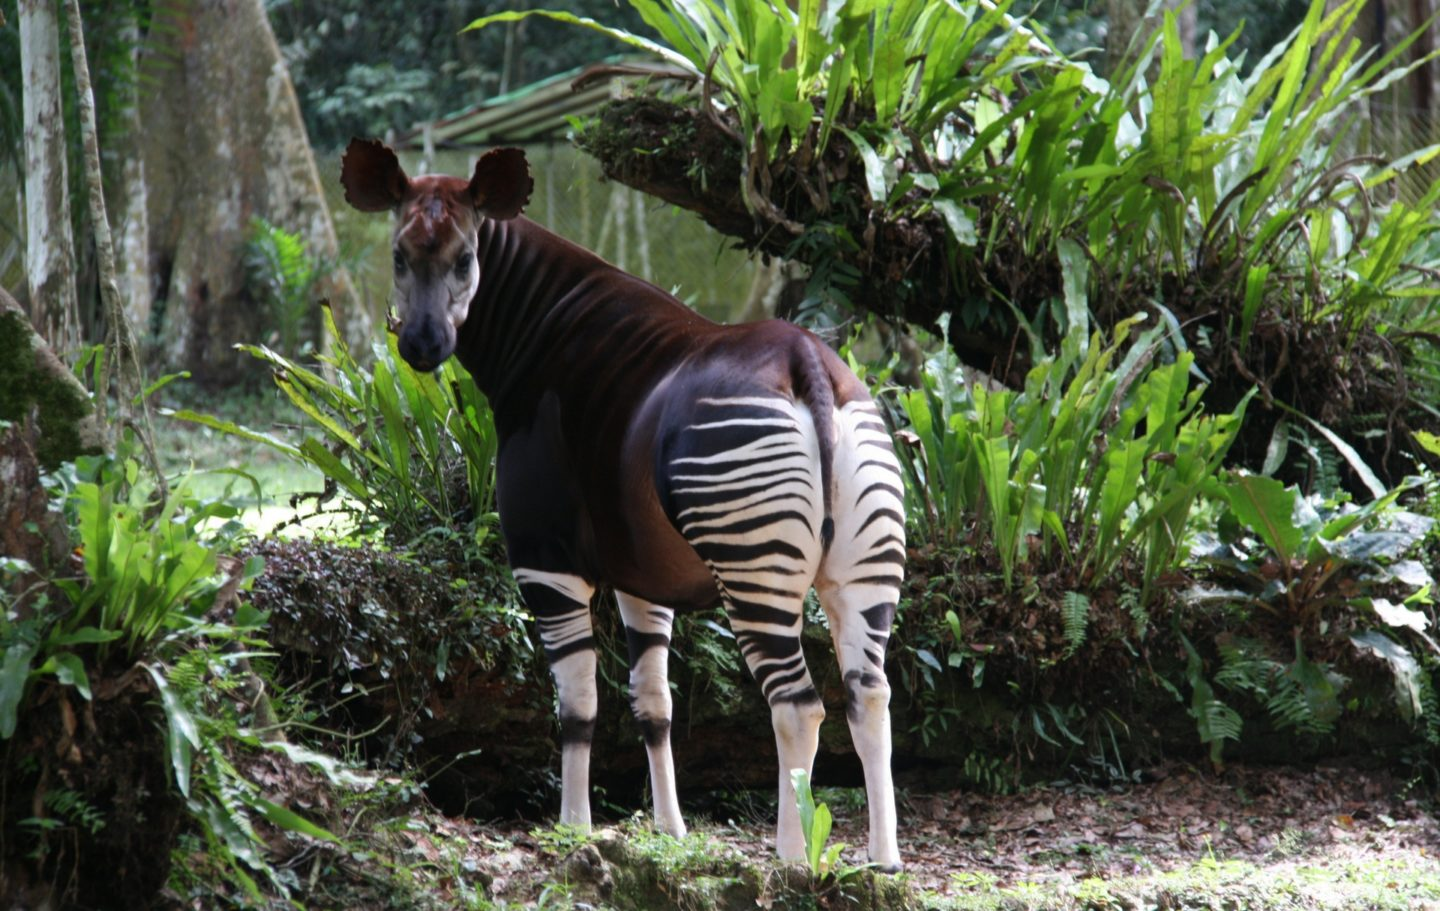 Okapi Conservation Project